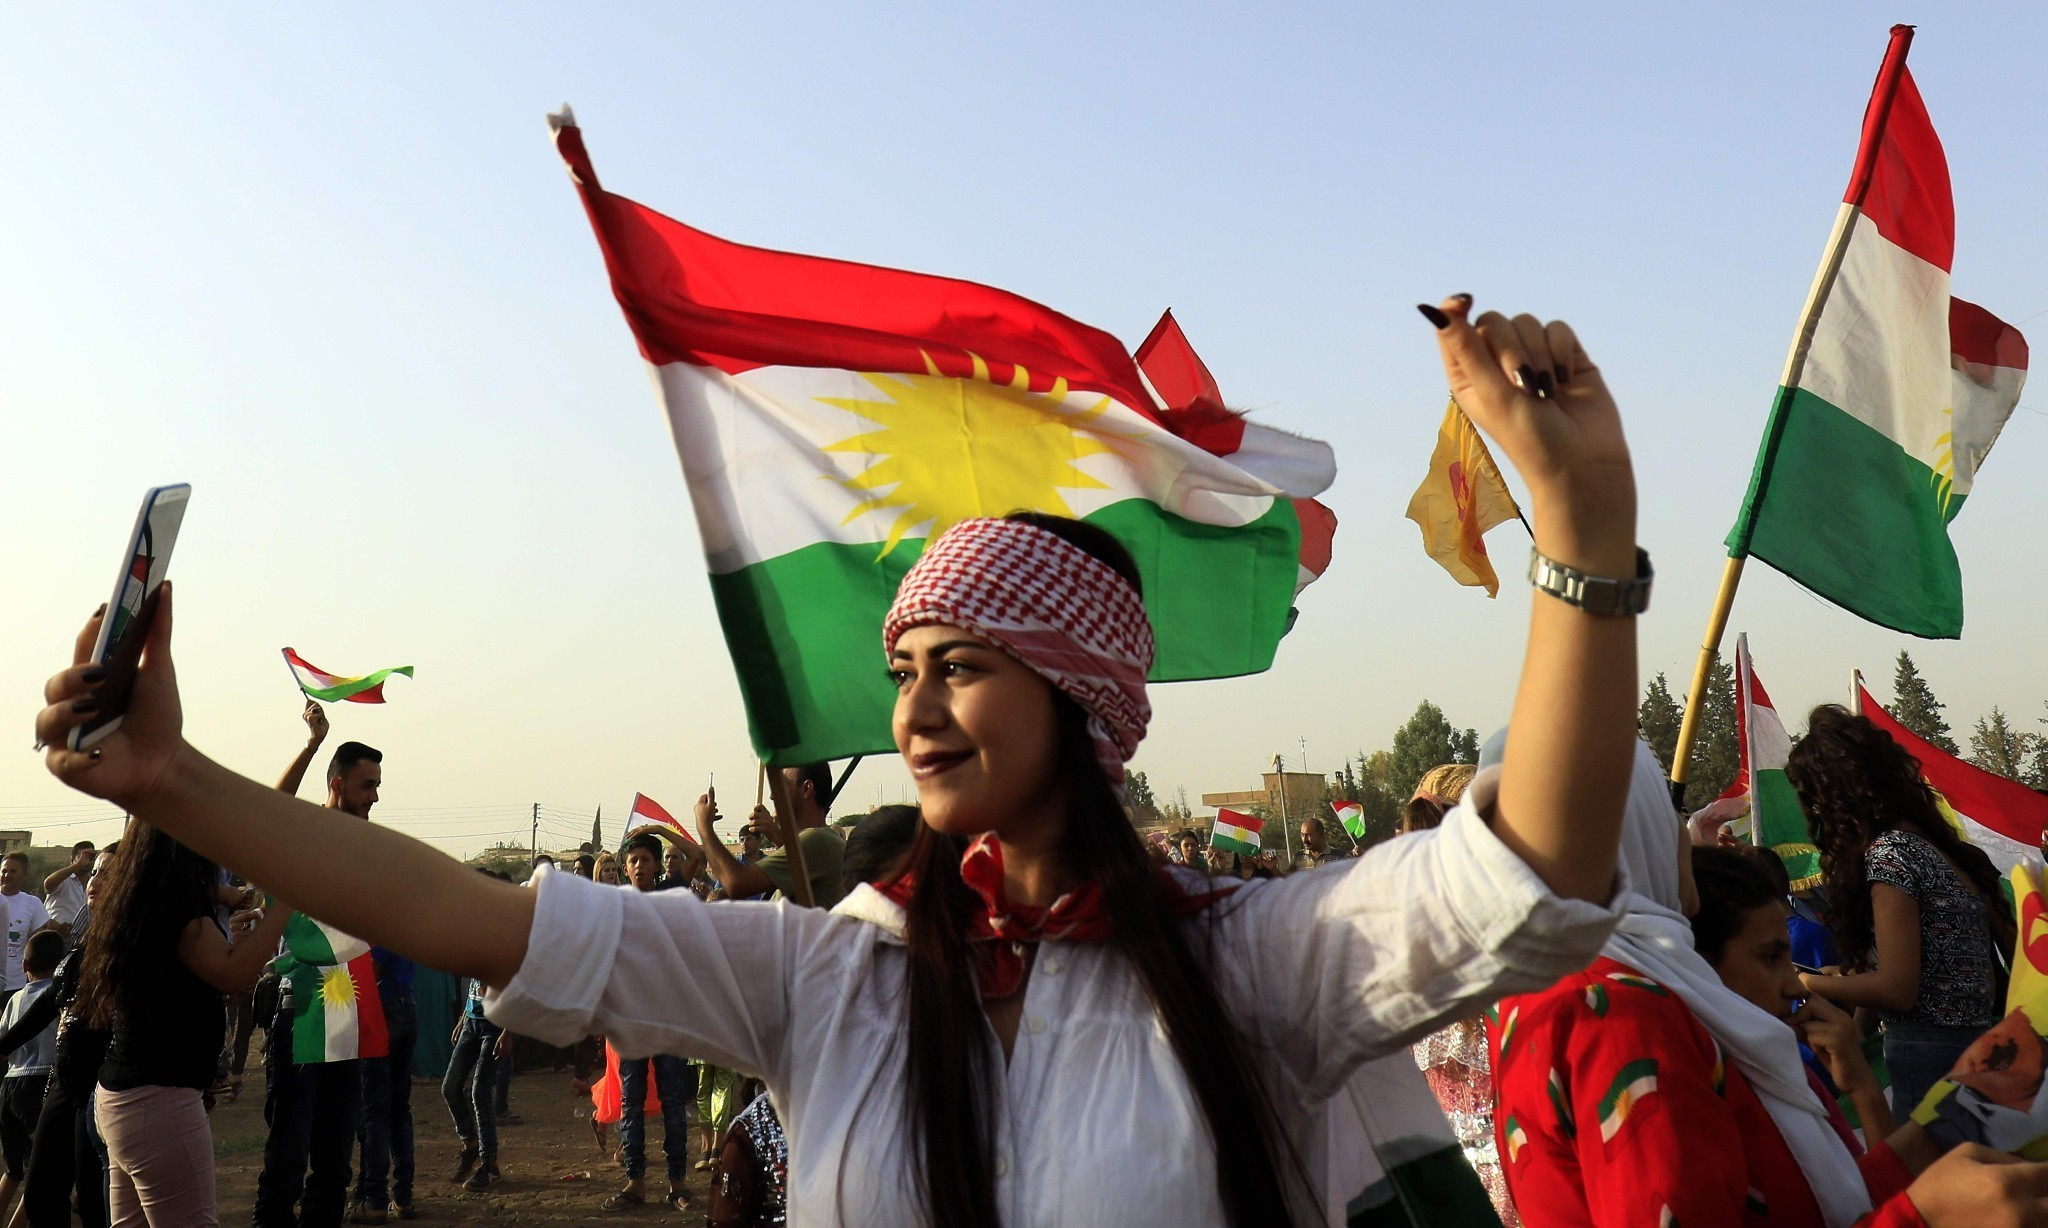 Over 92% of Iraq's Kurds vote for independence